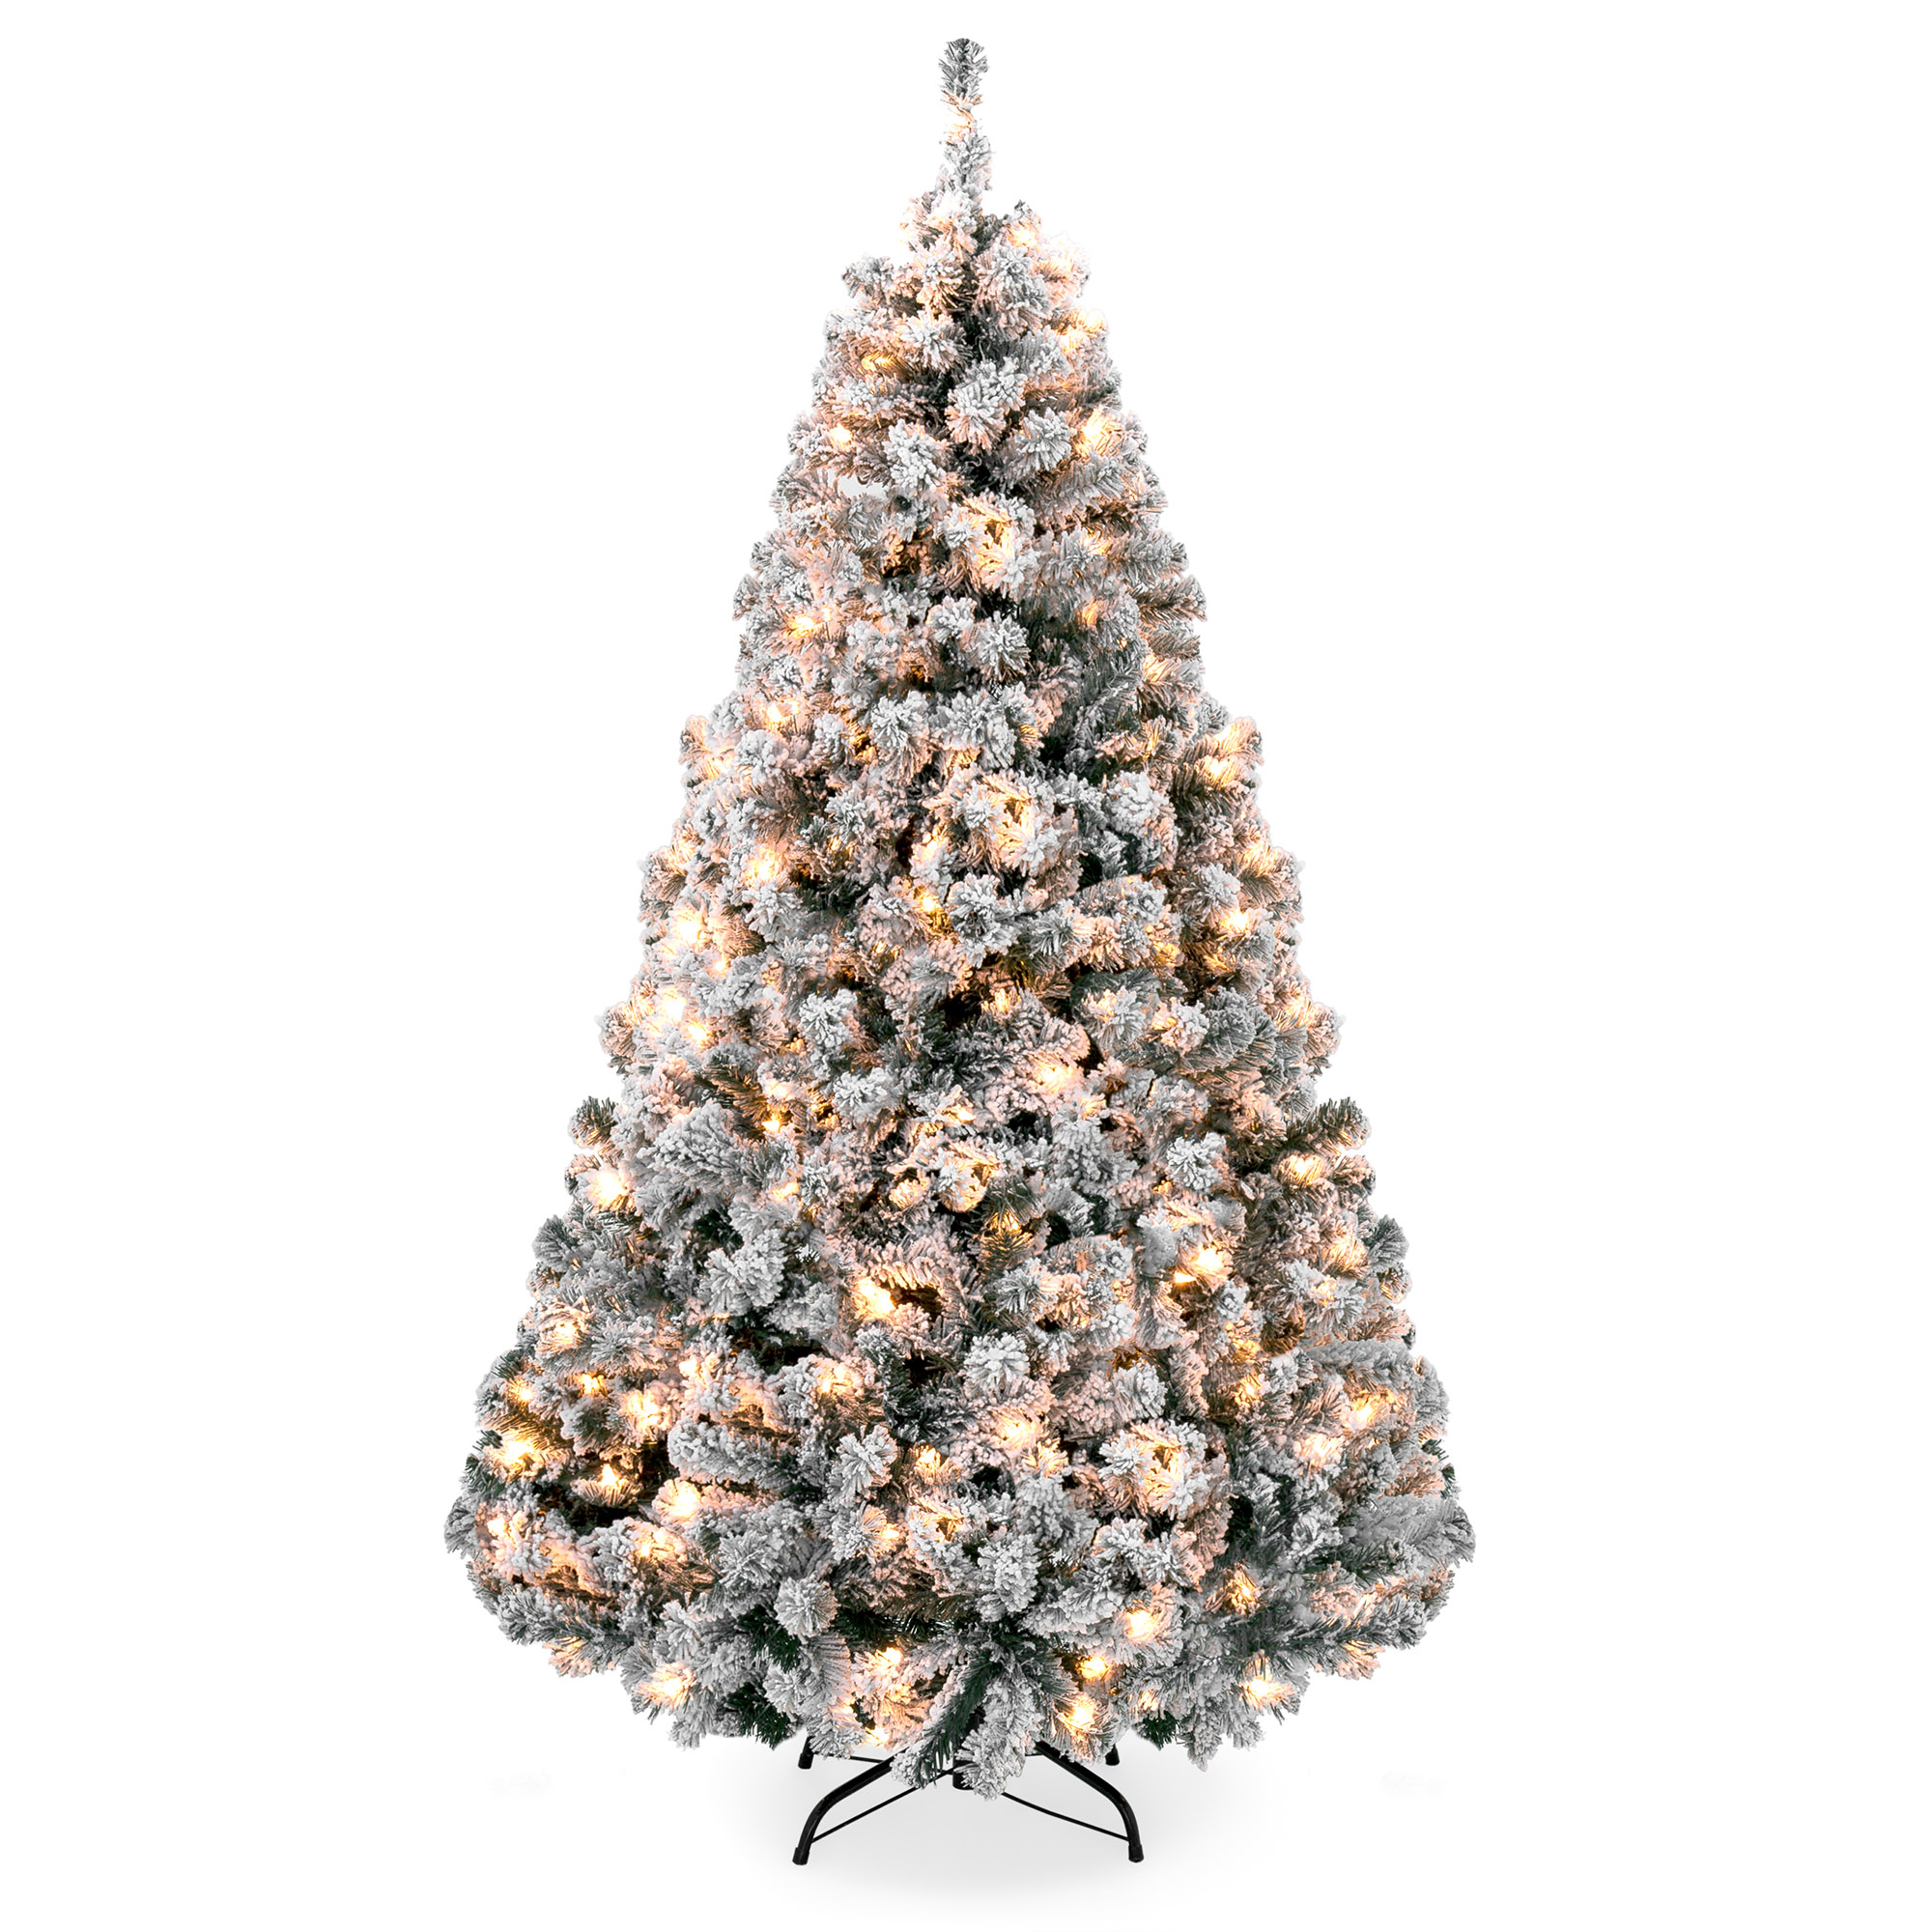 Best Choice Products 7.5ft Premium Pre-Lit Snow Flocked Hinged Artificial Christmas Pine Tree Festive Holiday Decor w/ 550 Warm White Lights